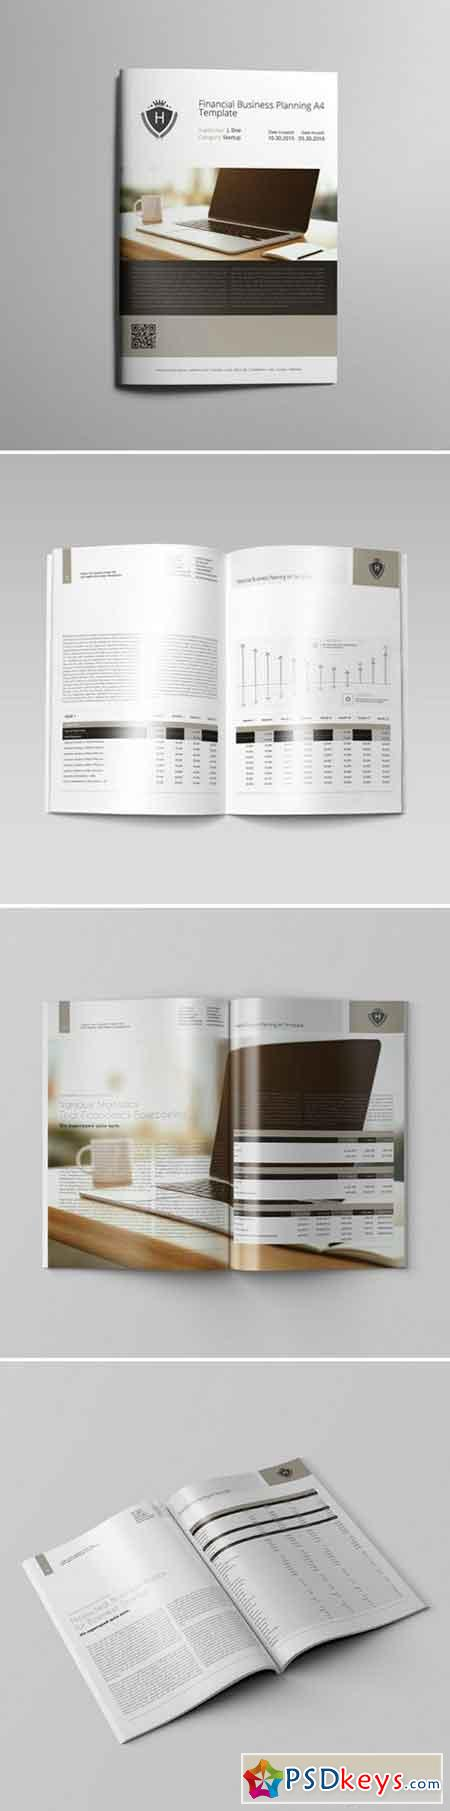 Financial Business Planning A4 Template 000121